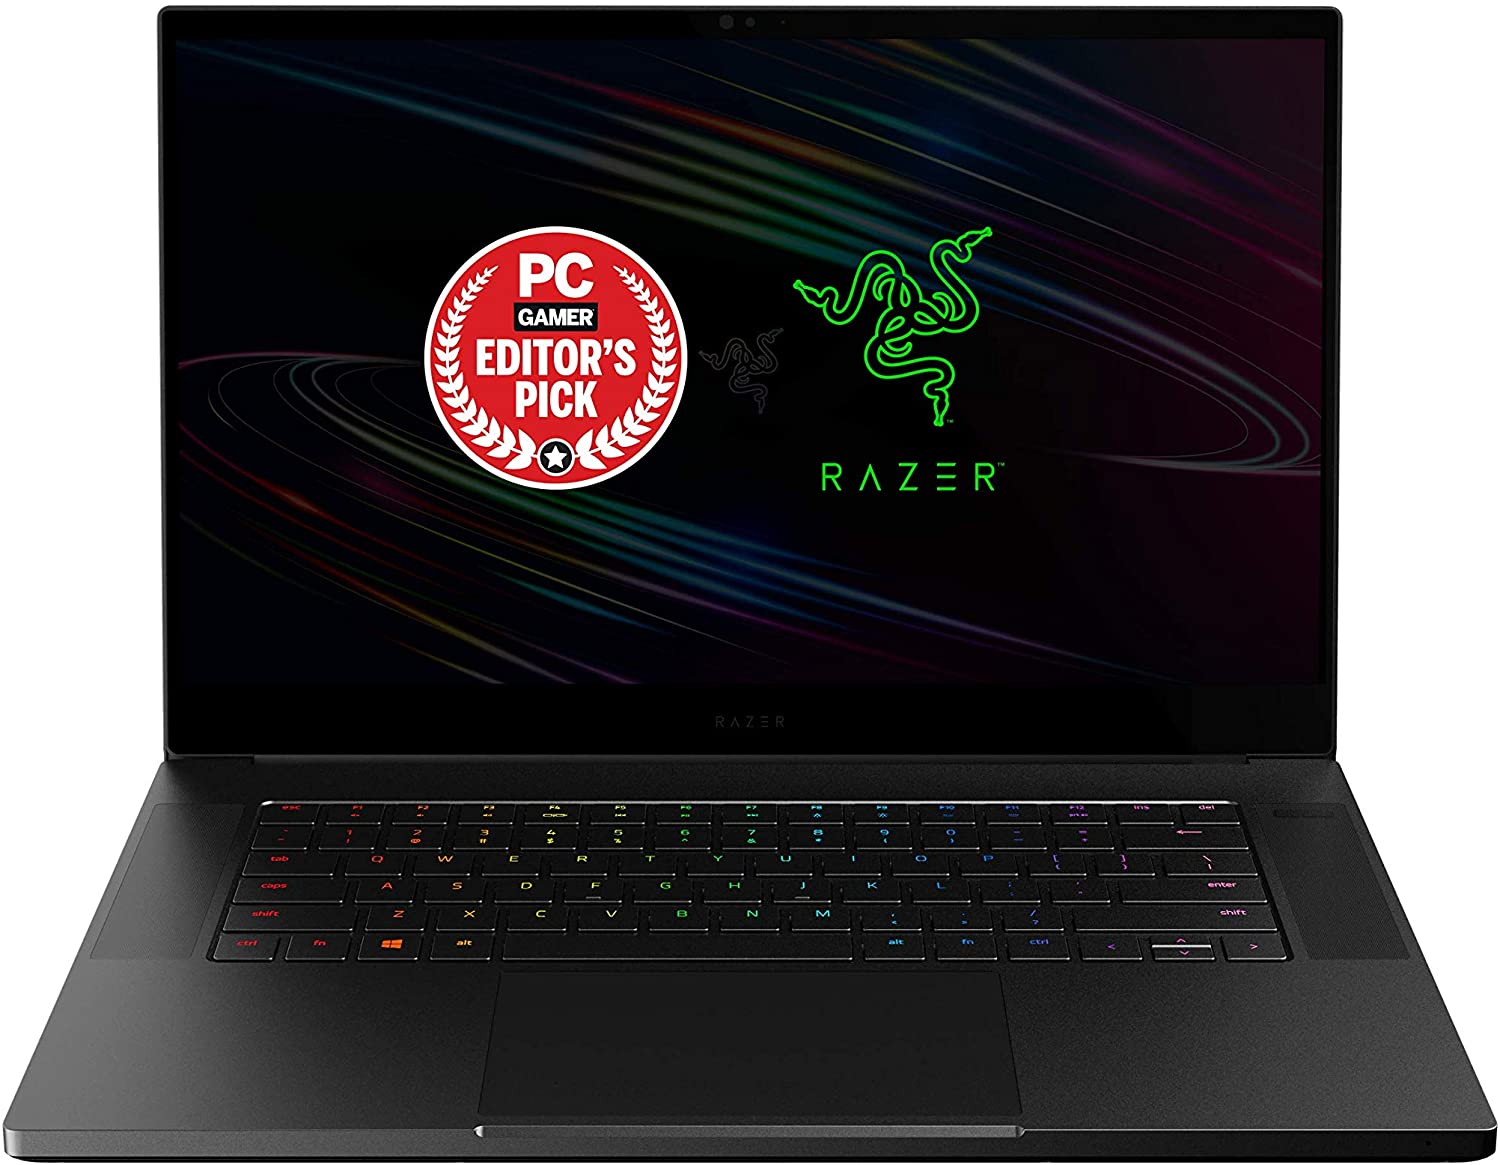 "Razer Blade 15 Advanced Gaming Laptop 2020: Intel Core i7-10875H 8-Core, NVIDIA GeForce RTX 2080 SUPER Max-Q, 15.6"" 4K OLED Touch, 16GB RAM, 1TB SSD, CNC Aluminum, Chroma, Thunderbolt 3, Creator Ready"